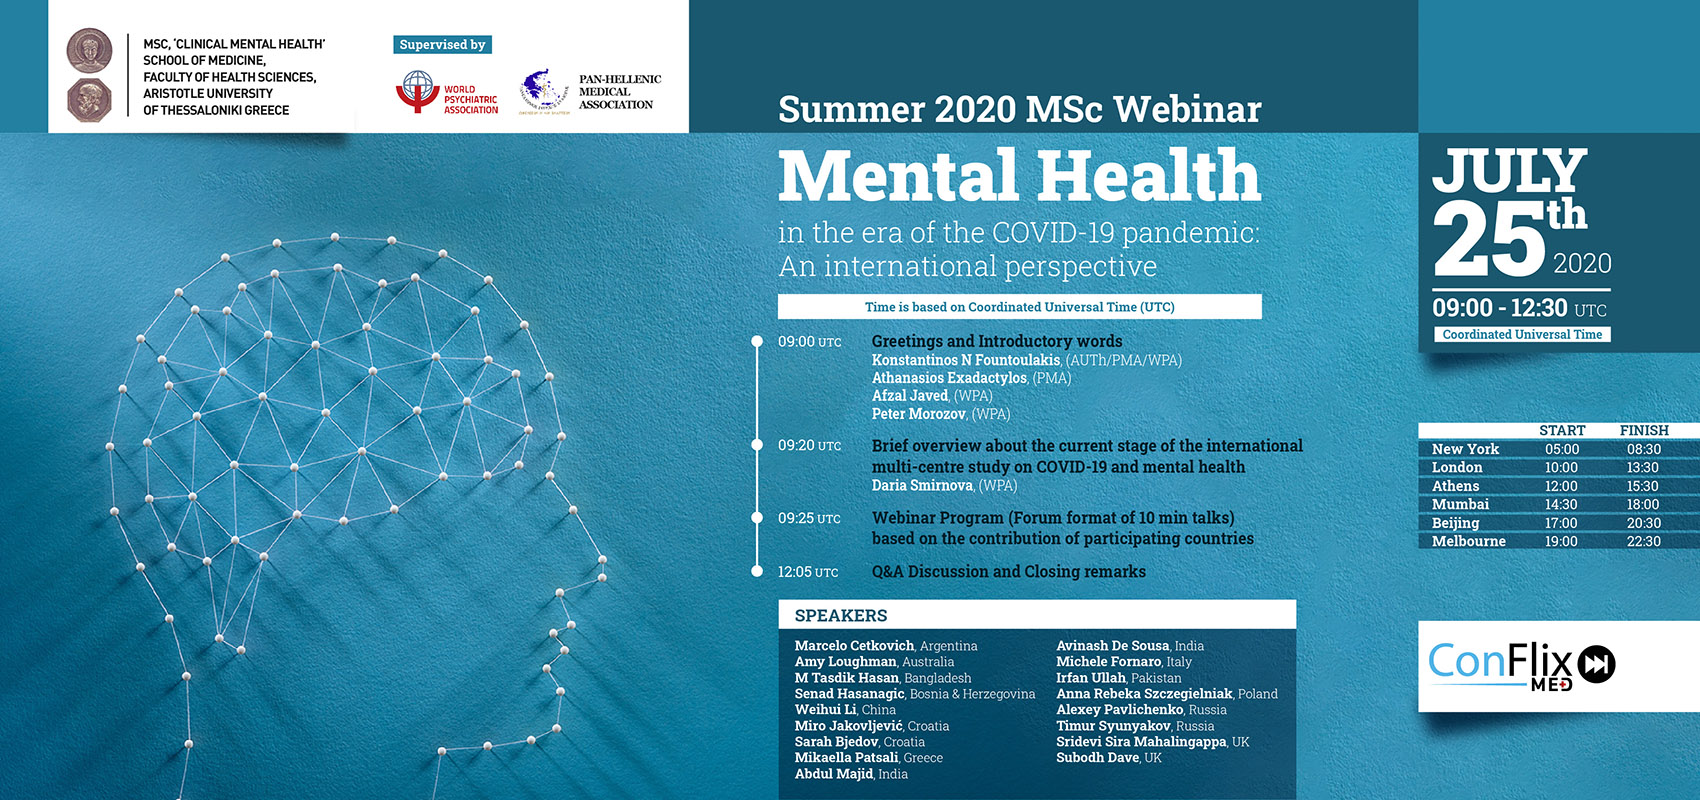 Summer 2020 MSc Webinar - Mental Health in the era of the COVID-19 pandemic: An international perspective